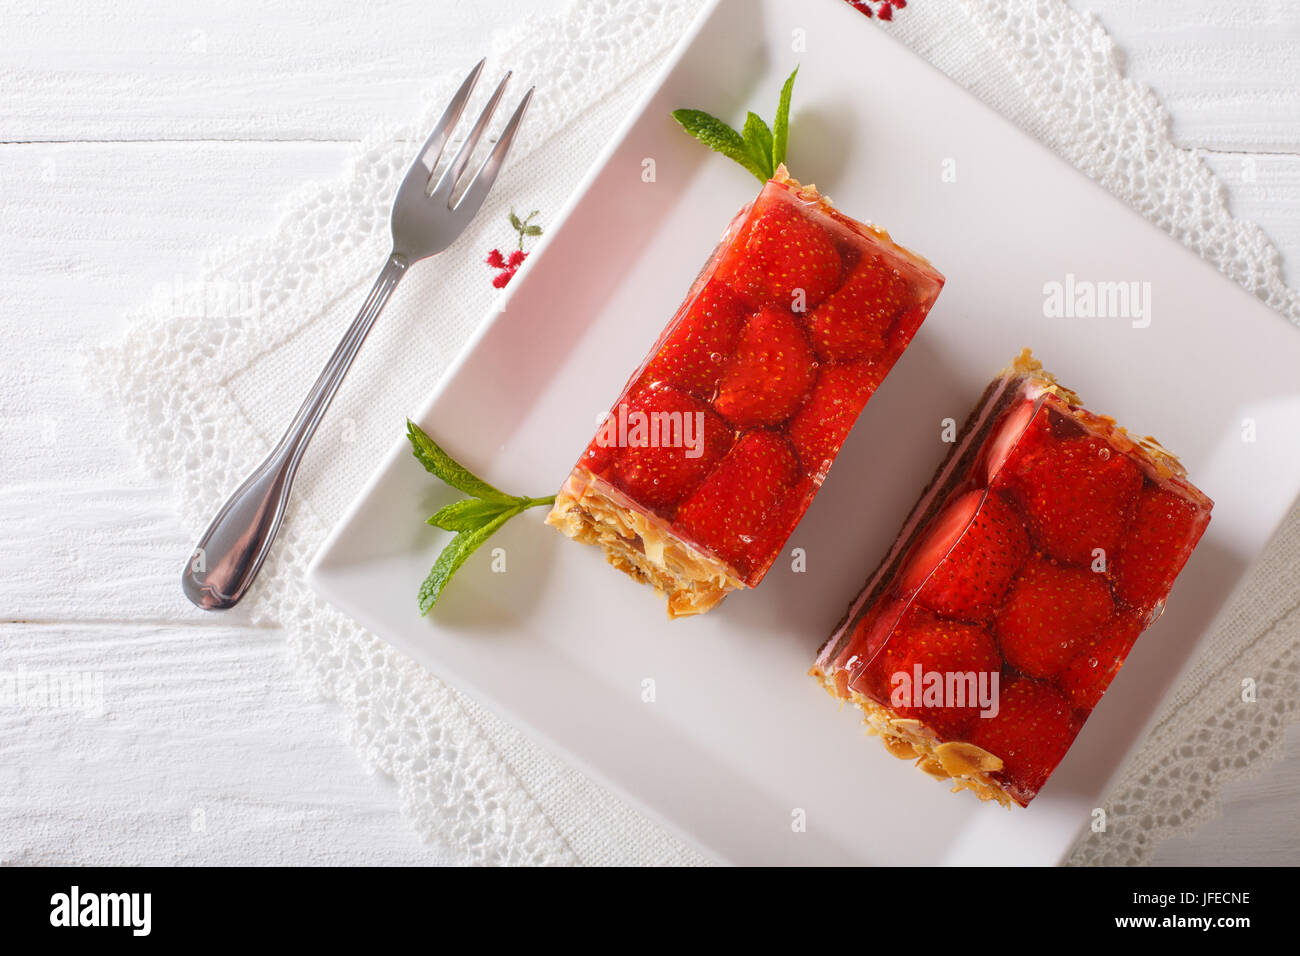 Strawberry jelly cake with almonds closeup on a plate. horizontal view from above - Stock Image